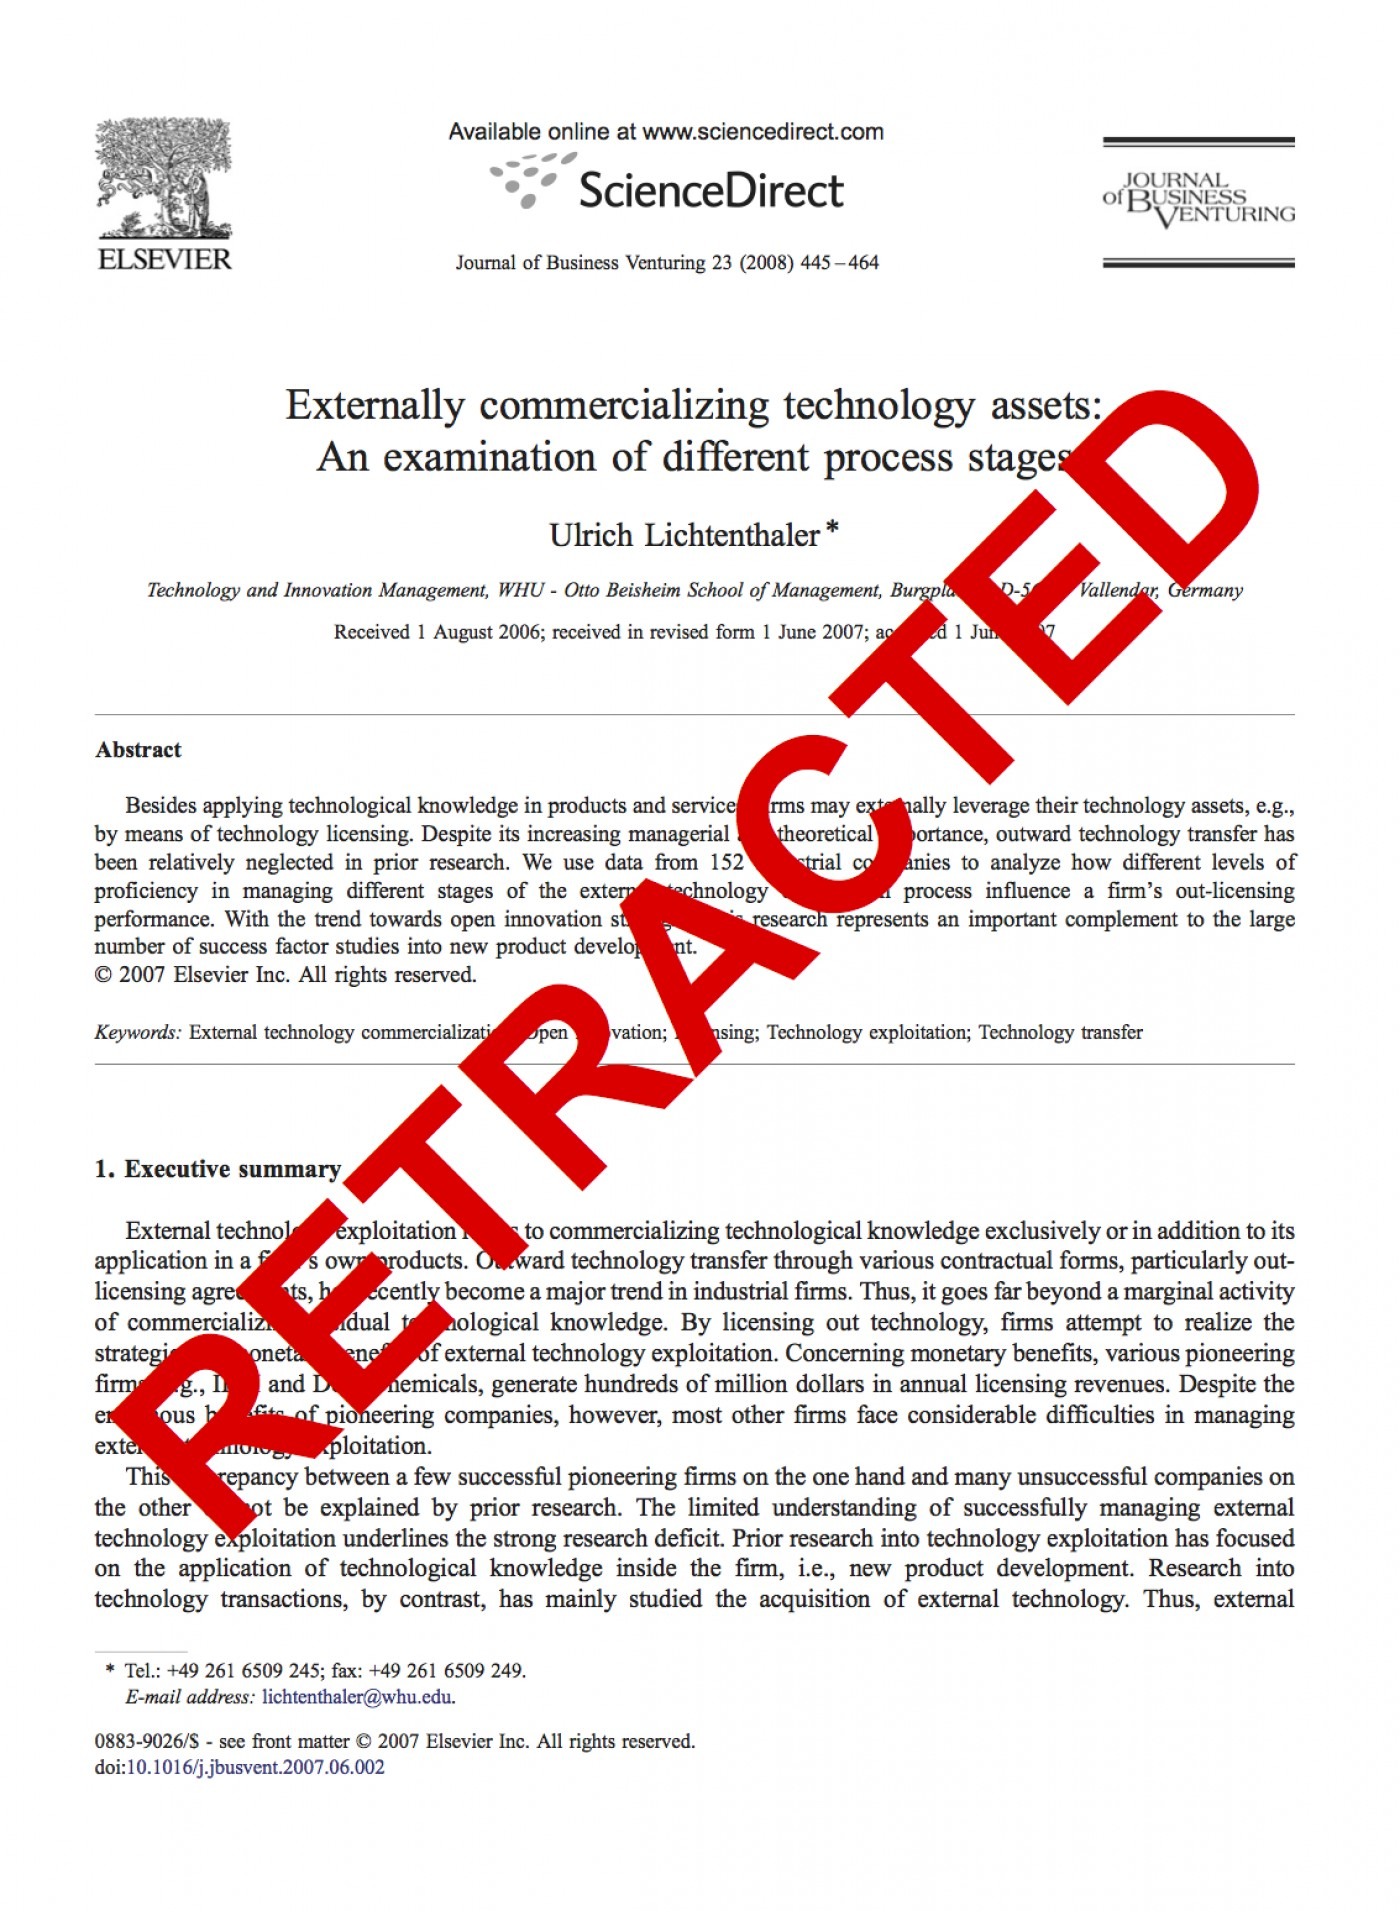 008 Research Paper 2010jbv Lichtenthalerretracted Can You Buy Amazing Papers 1400